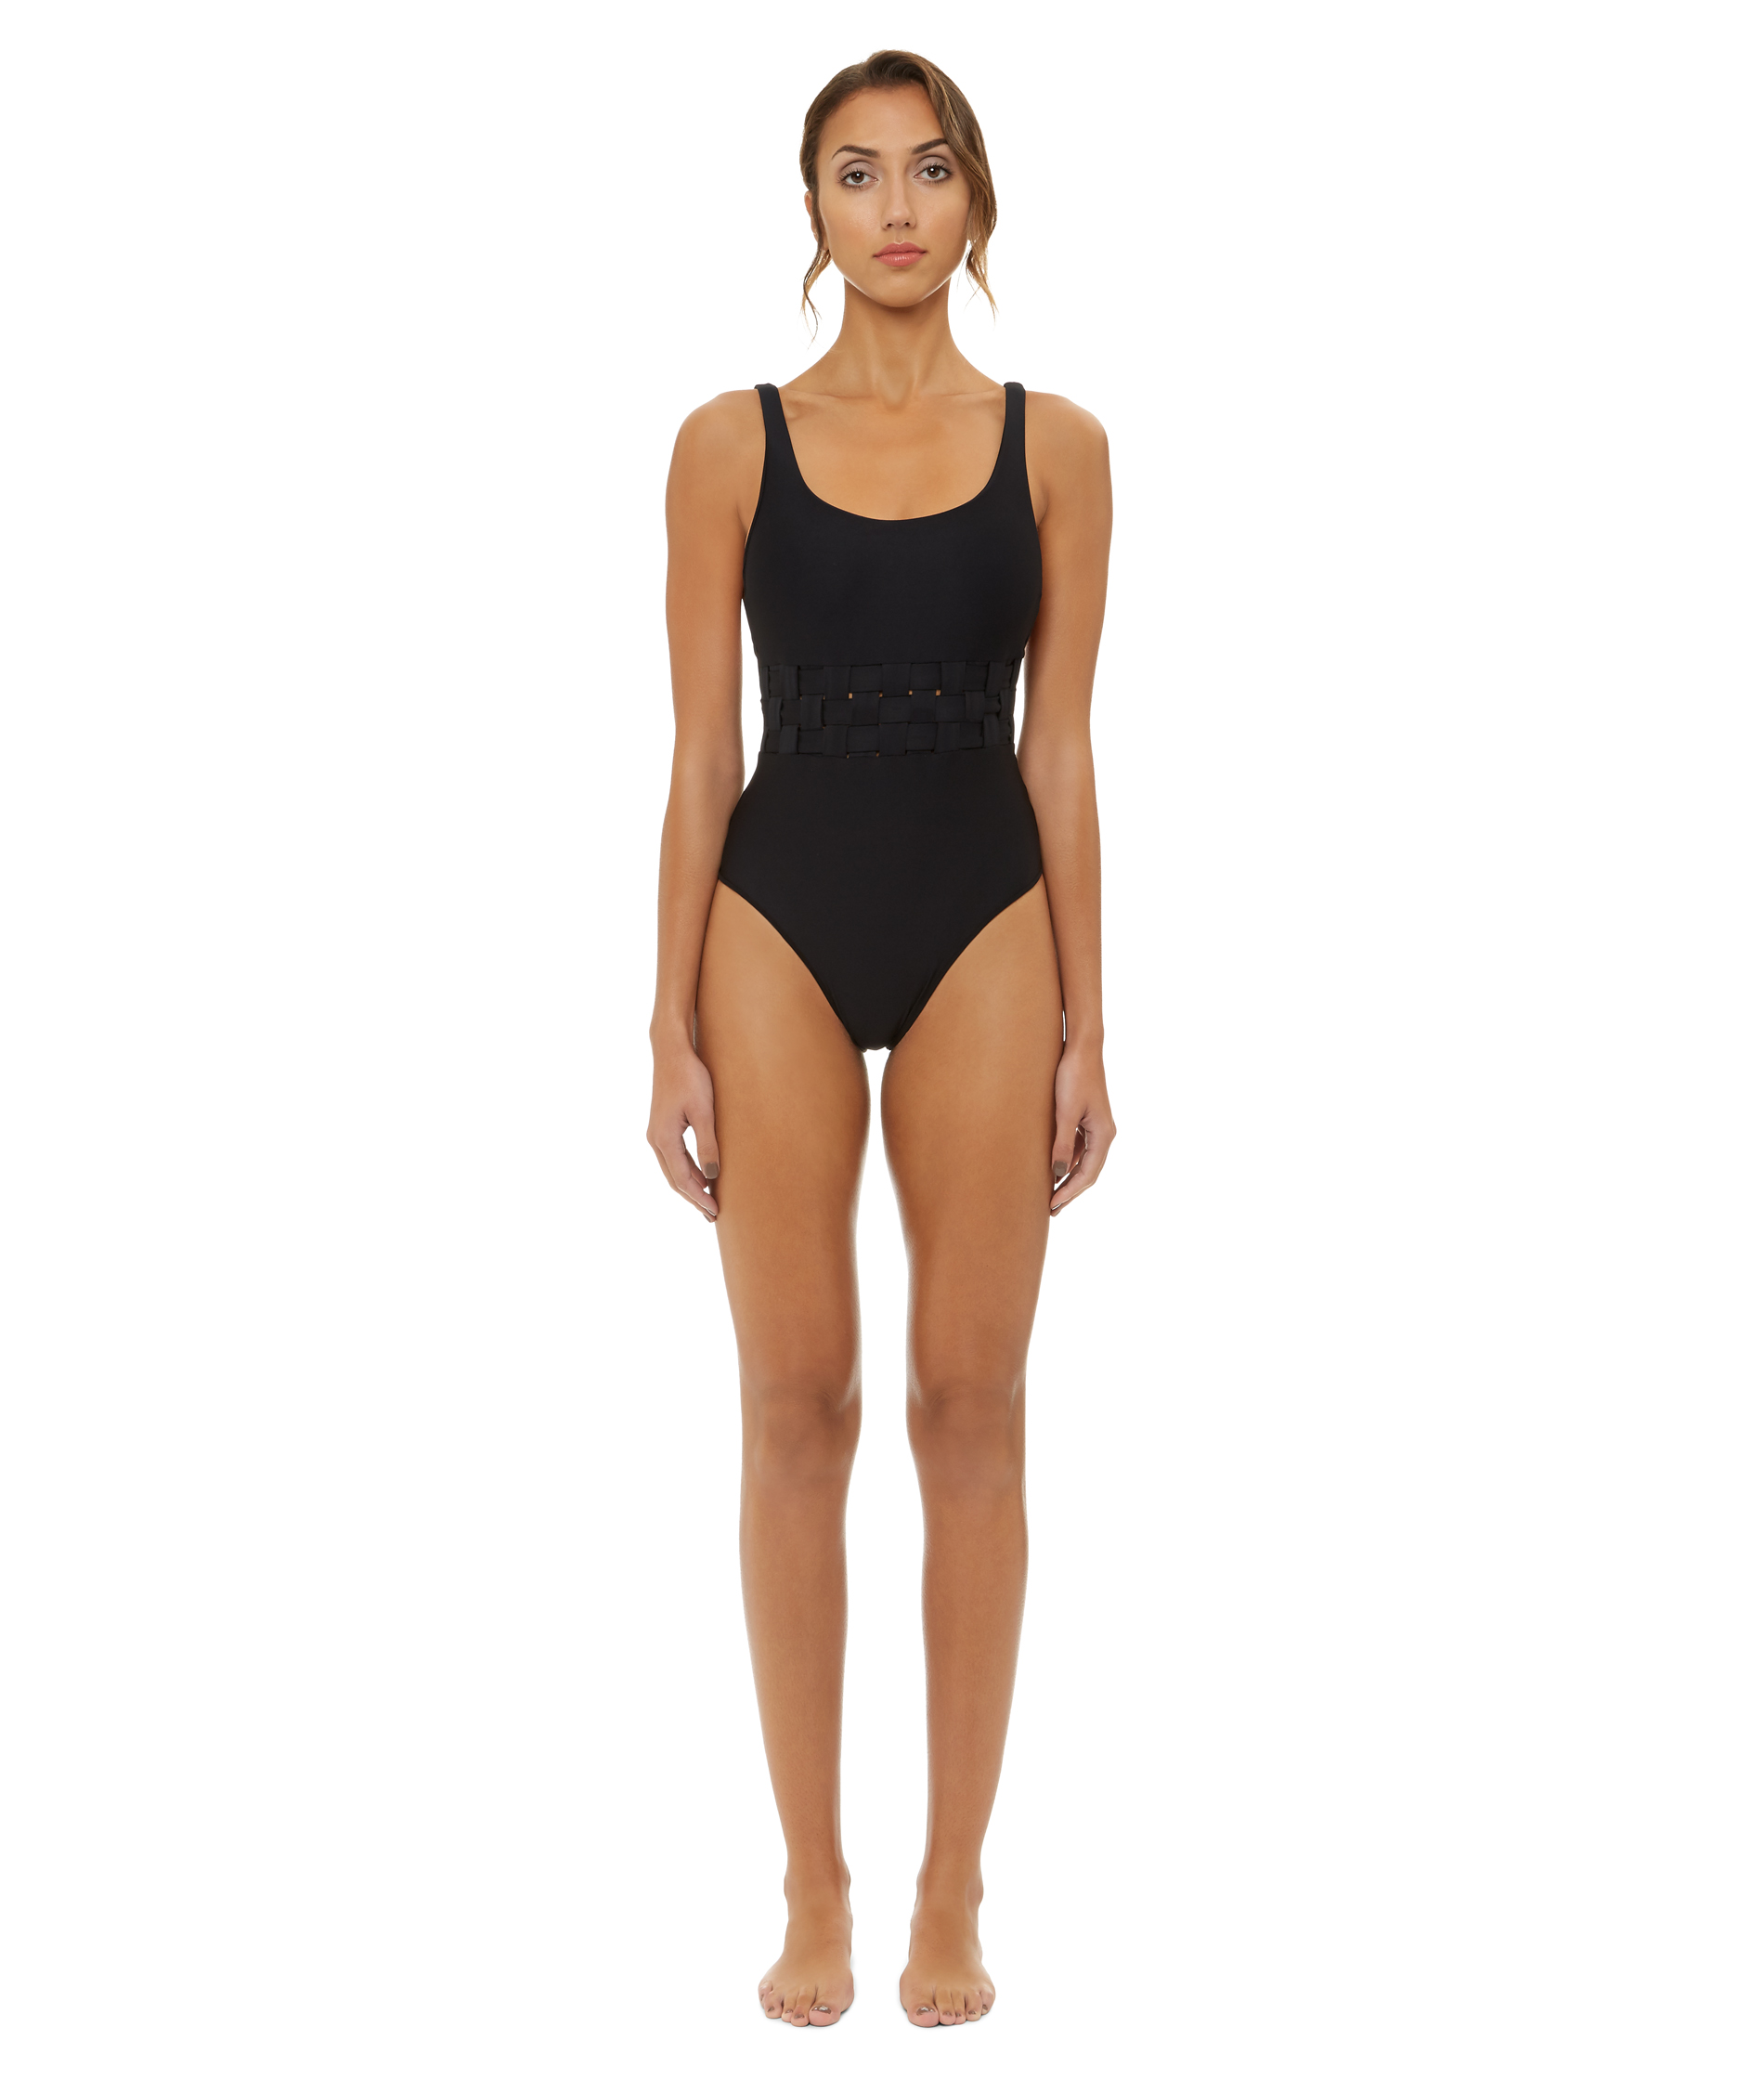 Monaco | High leg swimsuit